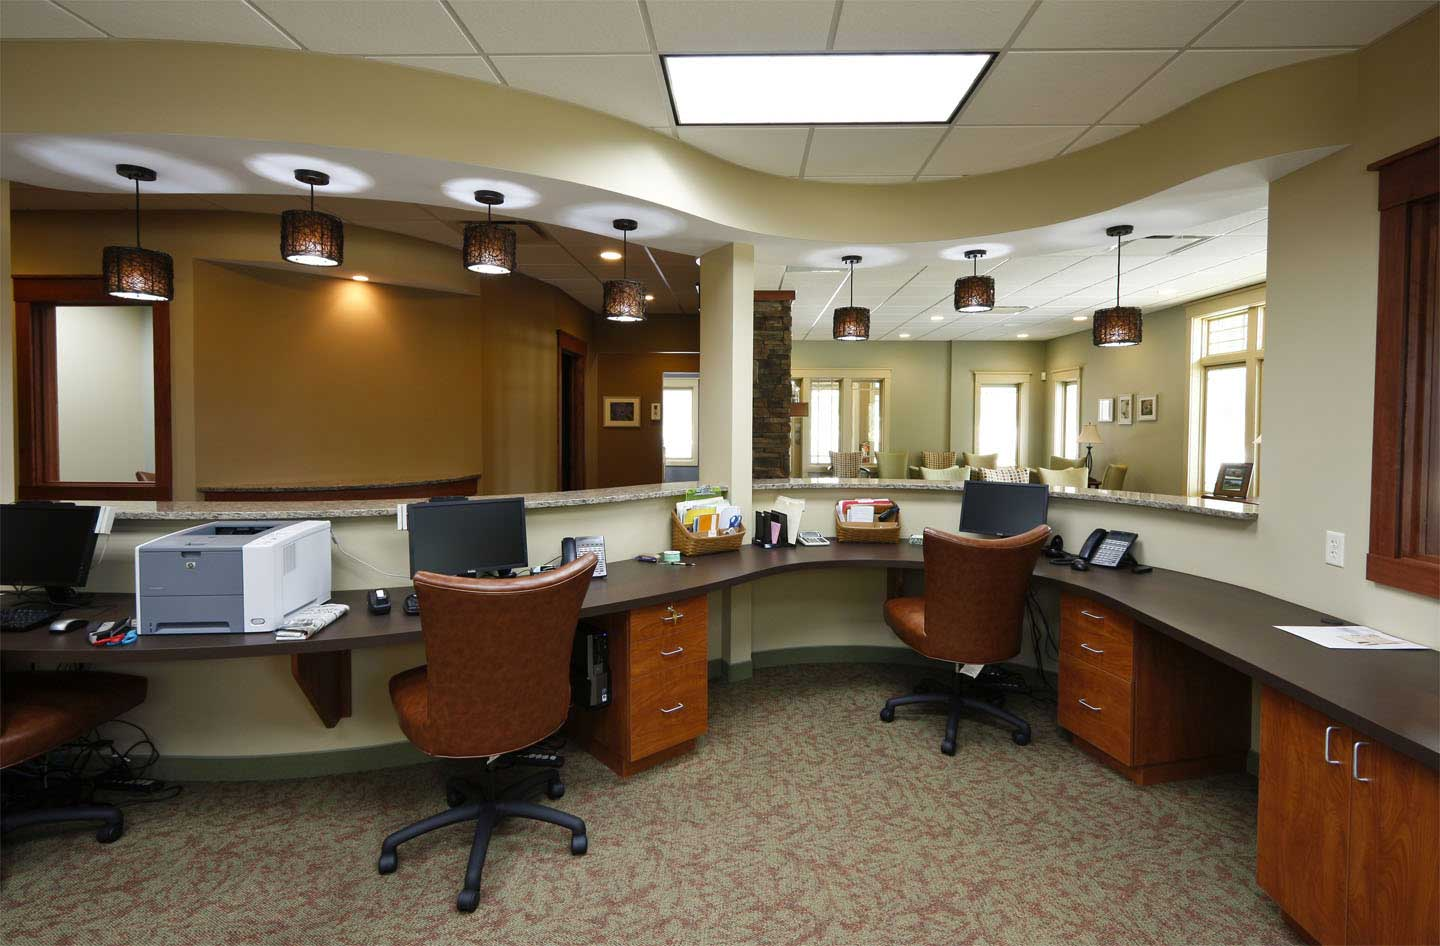 Office interior design dreams house furniture for Dental office interior design